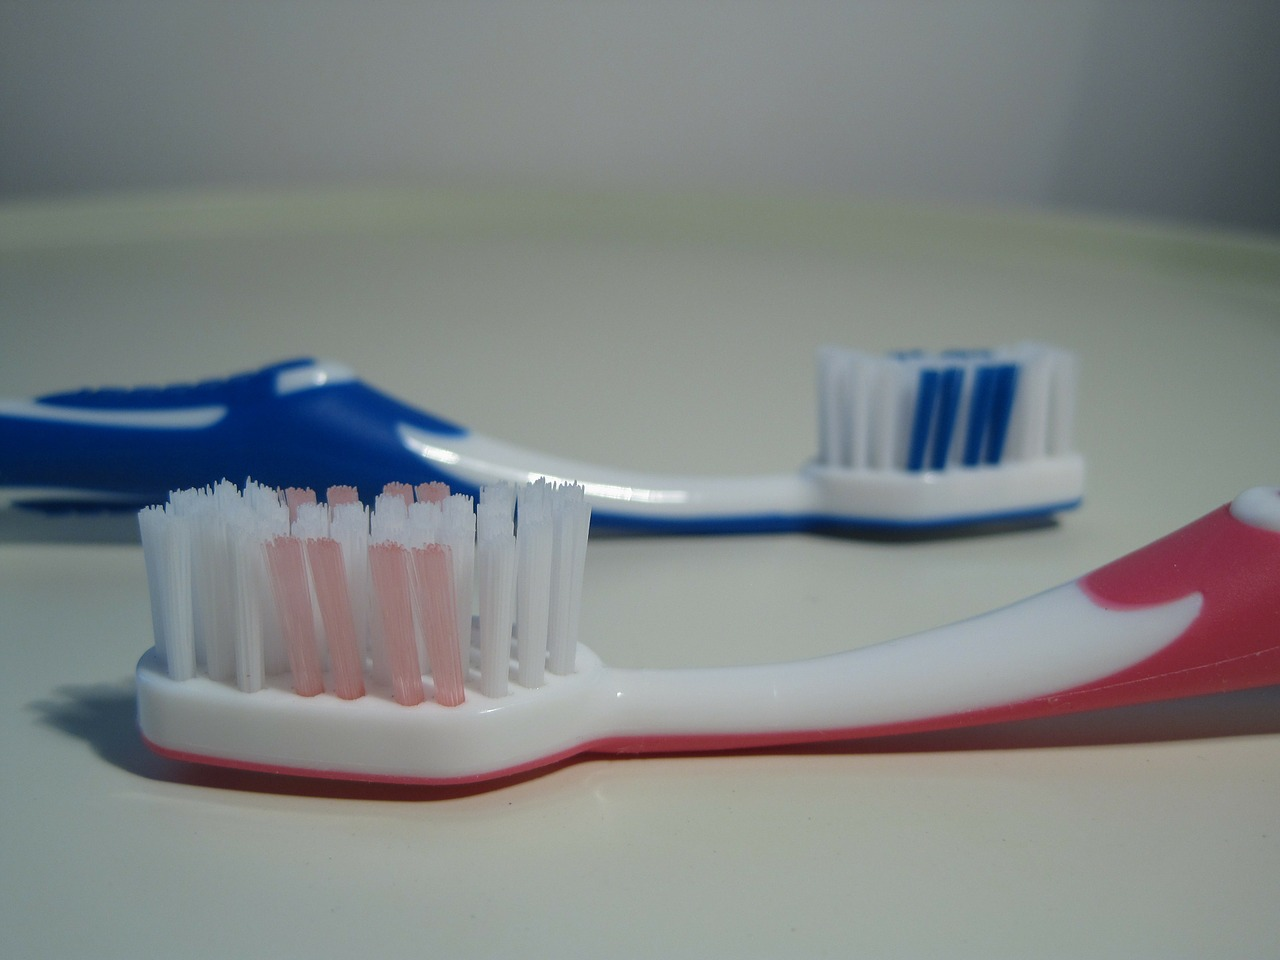 toothbrush,dental care,dentistry,hygiene,body care,bless you,clean,dental hygiene,tooth,free pictures, free photos, free images, royalty free, free illustrations, public domain